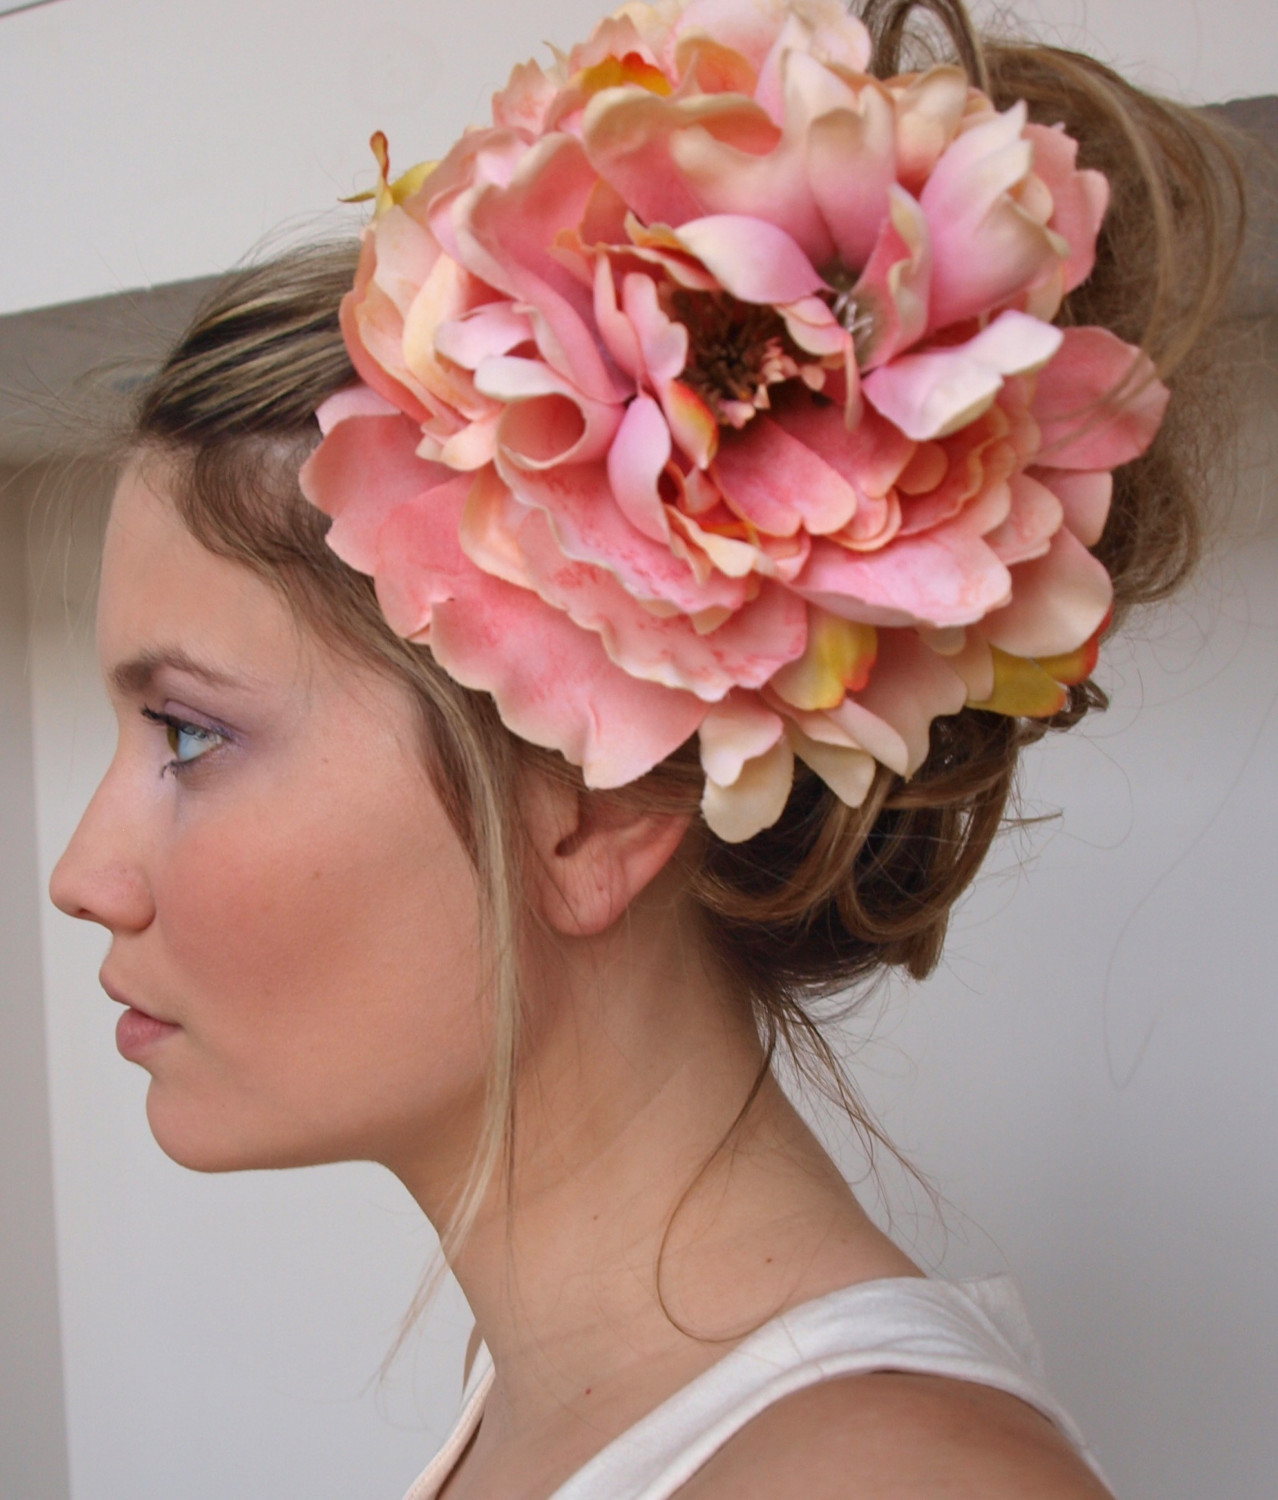 the chateauroux Large Flower Hair Clip in Pink Pastel.